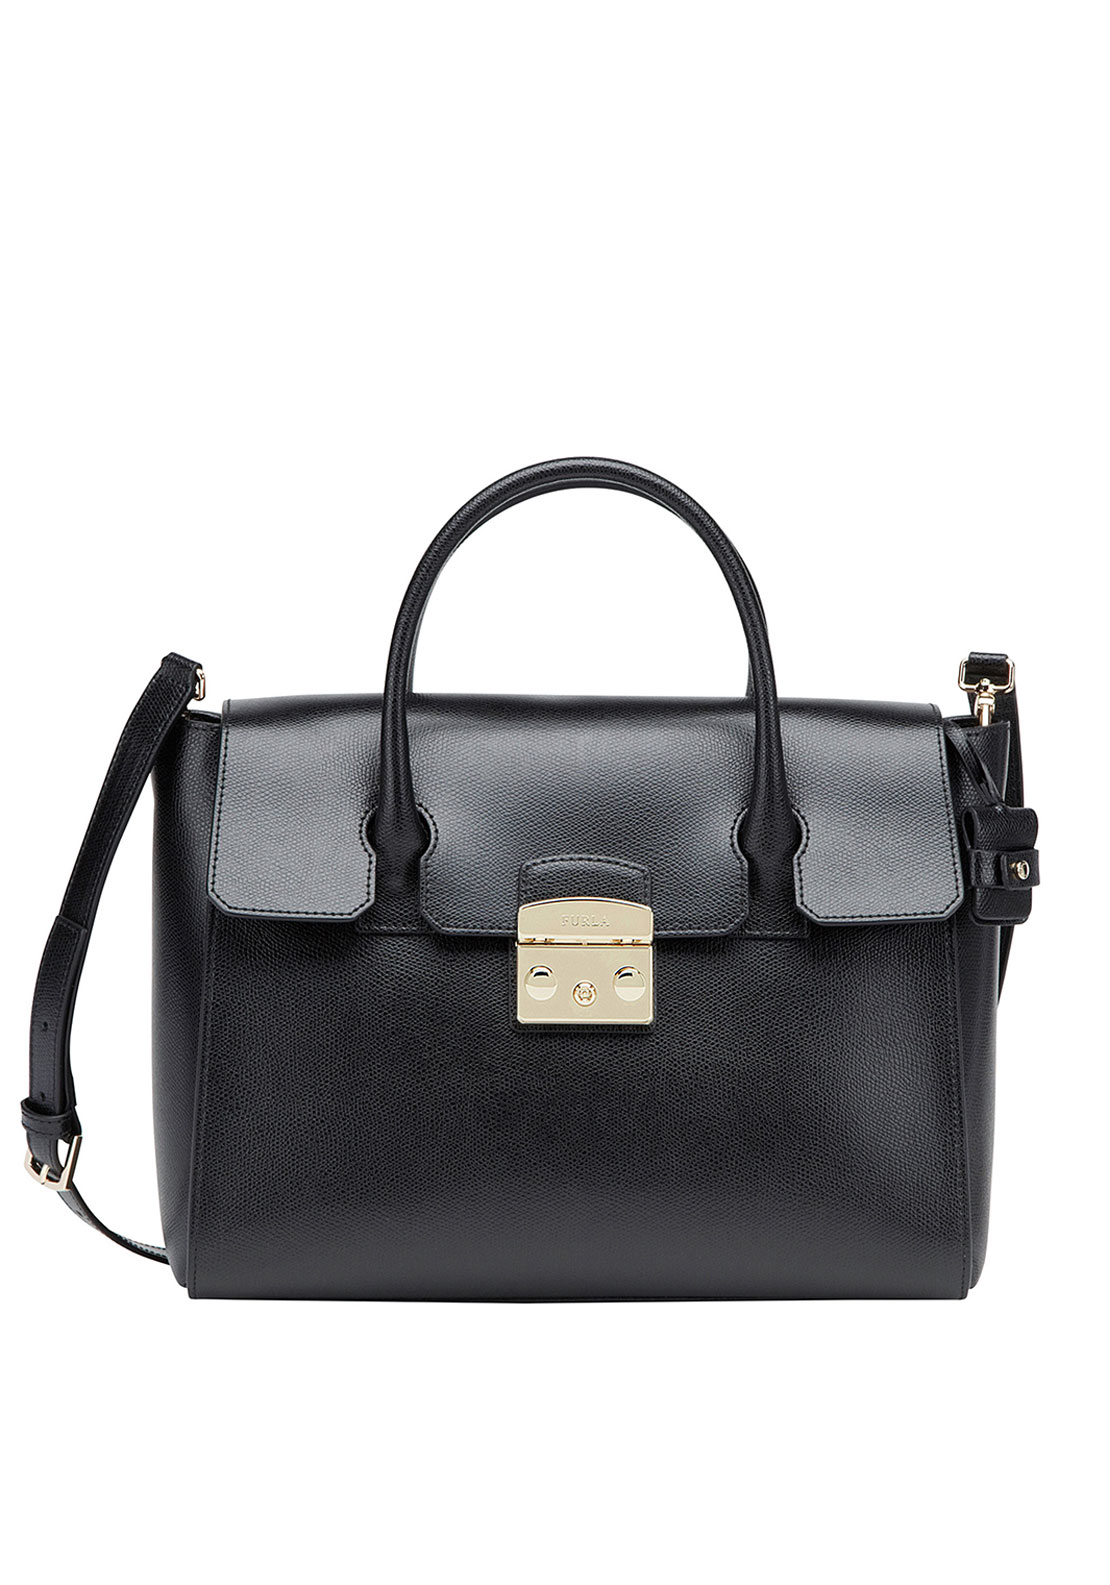 Furla Metropolis Leather Medium Satchel Bag, Black